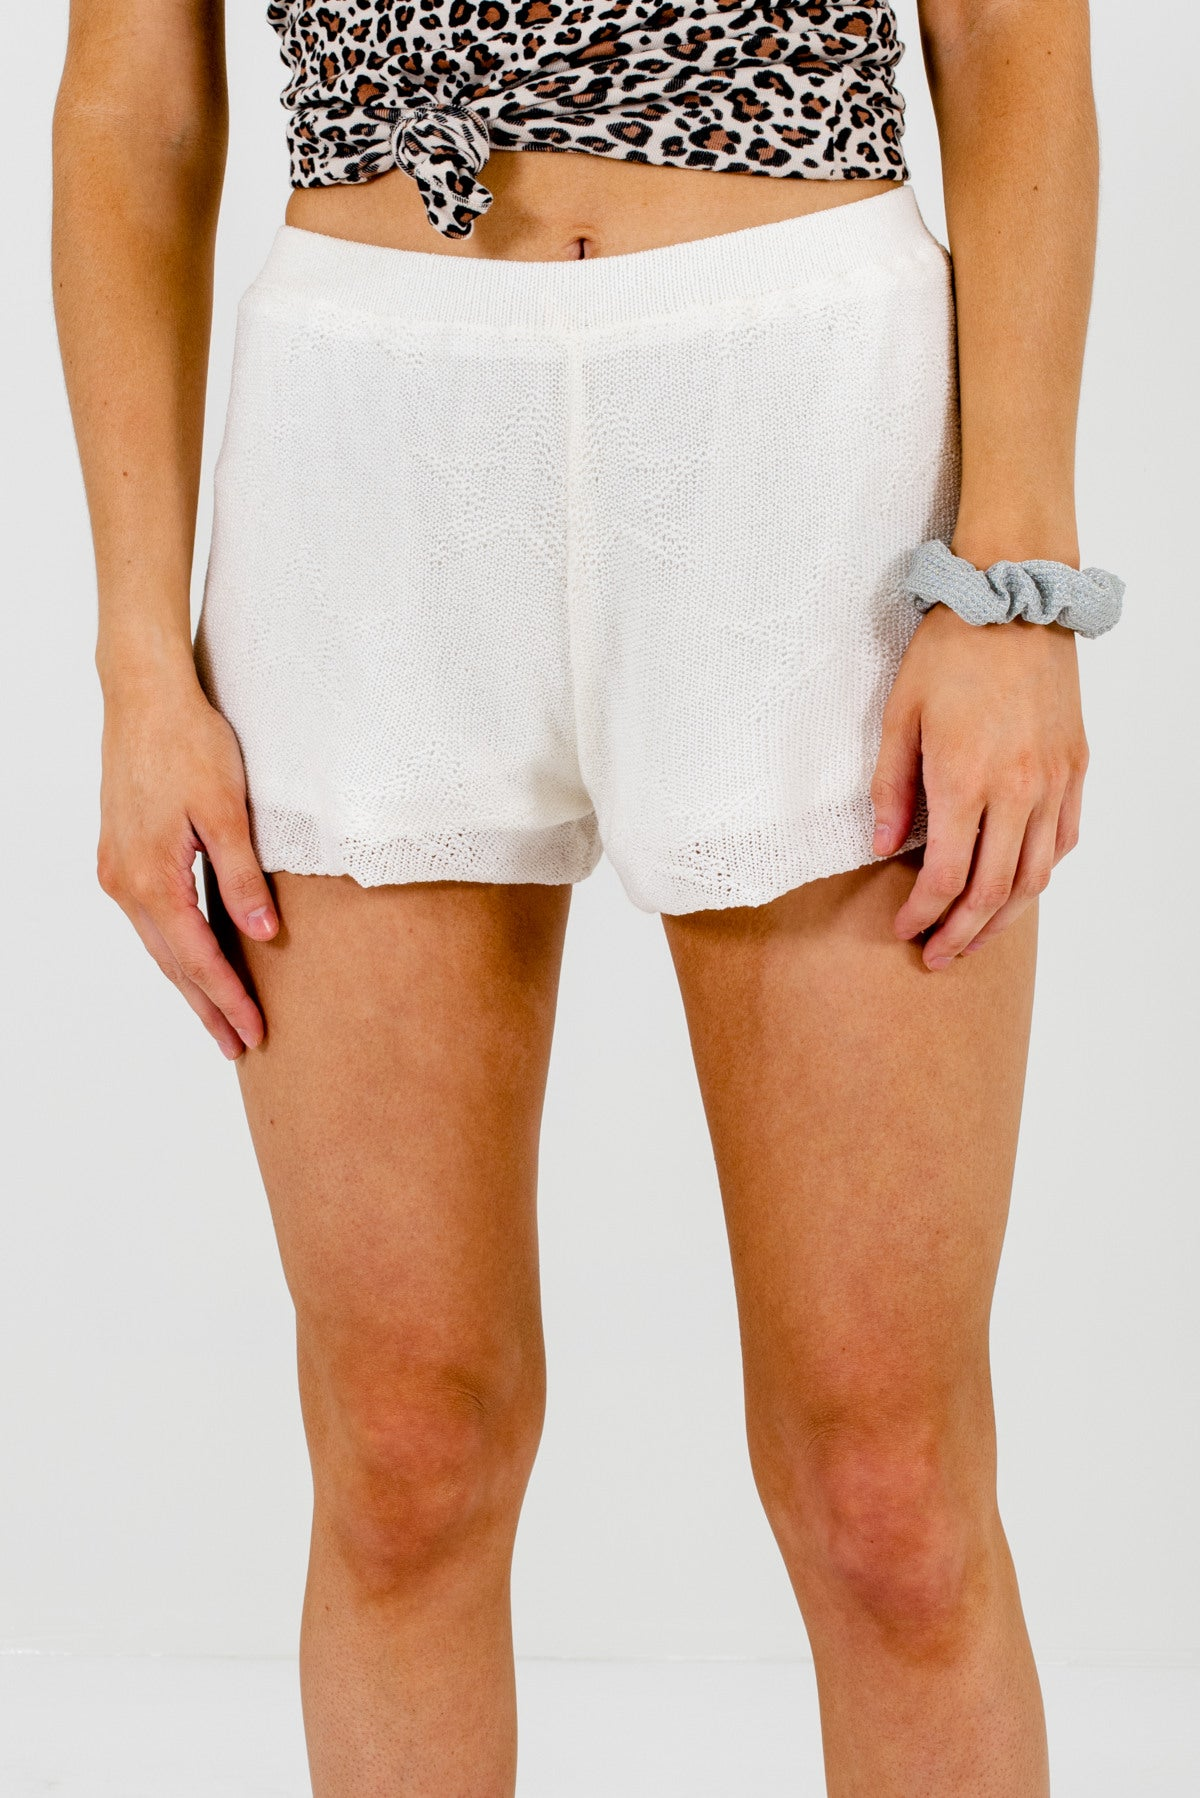 white material shorts